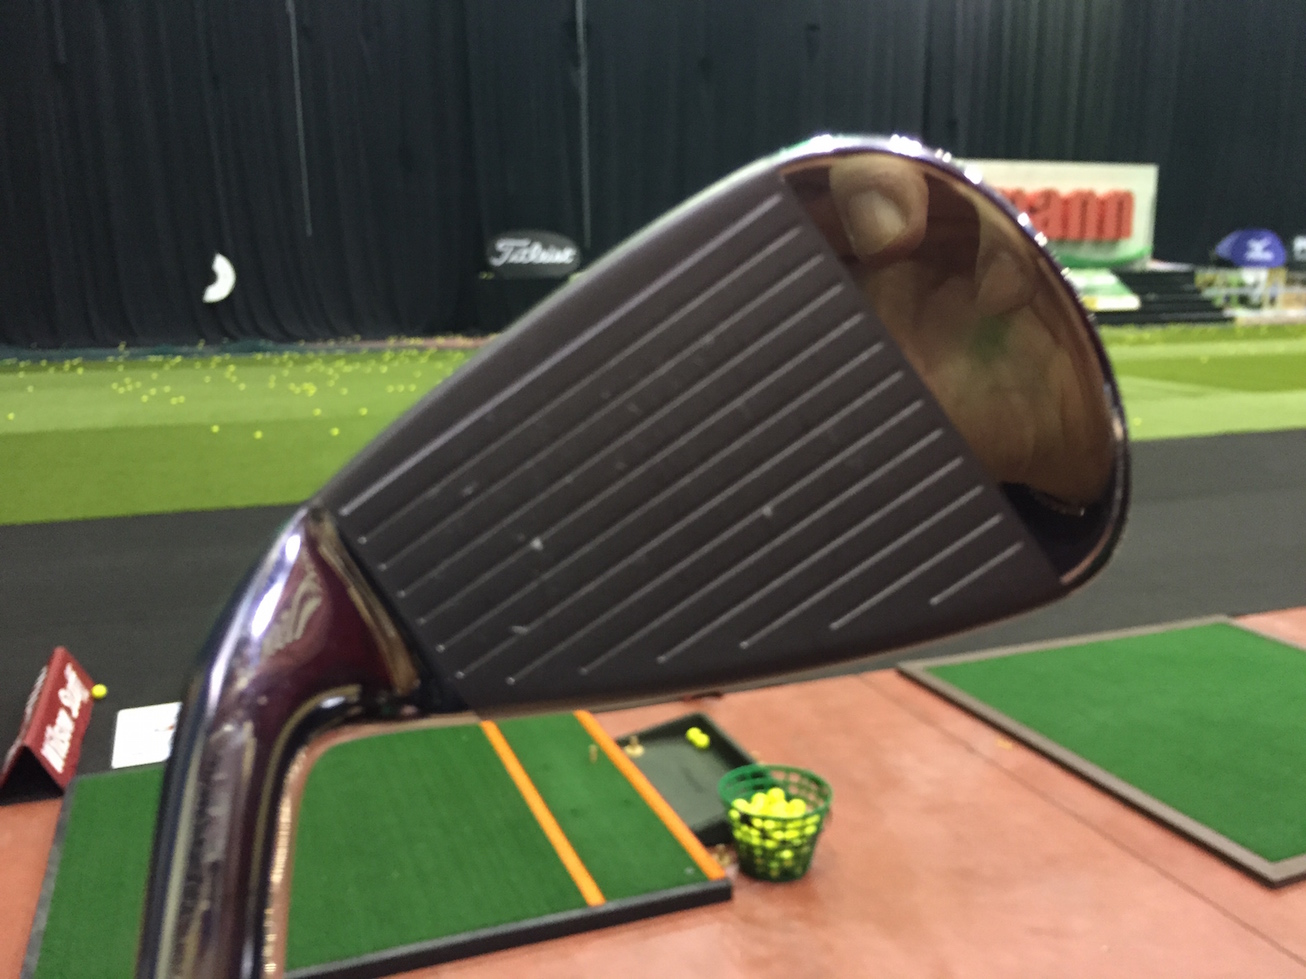 Fiera del Golf Parma 2015 le foto ed i video di Italian Golf Show e le prove dei materiali25 - Fiera del Golf Parma: le foto ed i video di Italian Golf Show